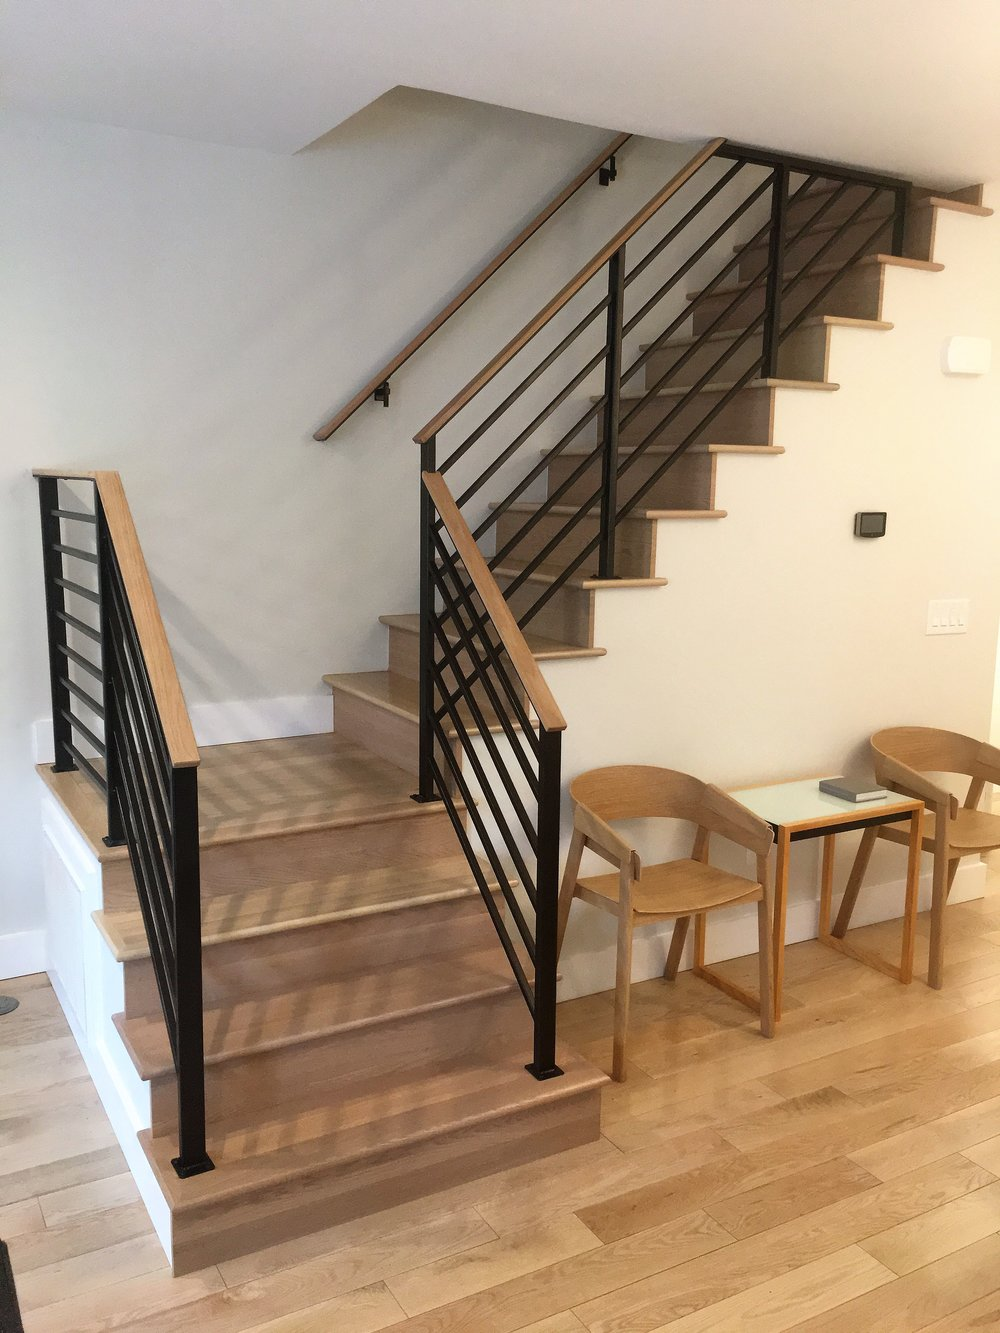 Horizontal steel railing